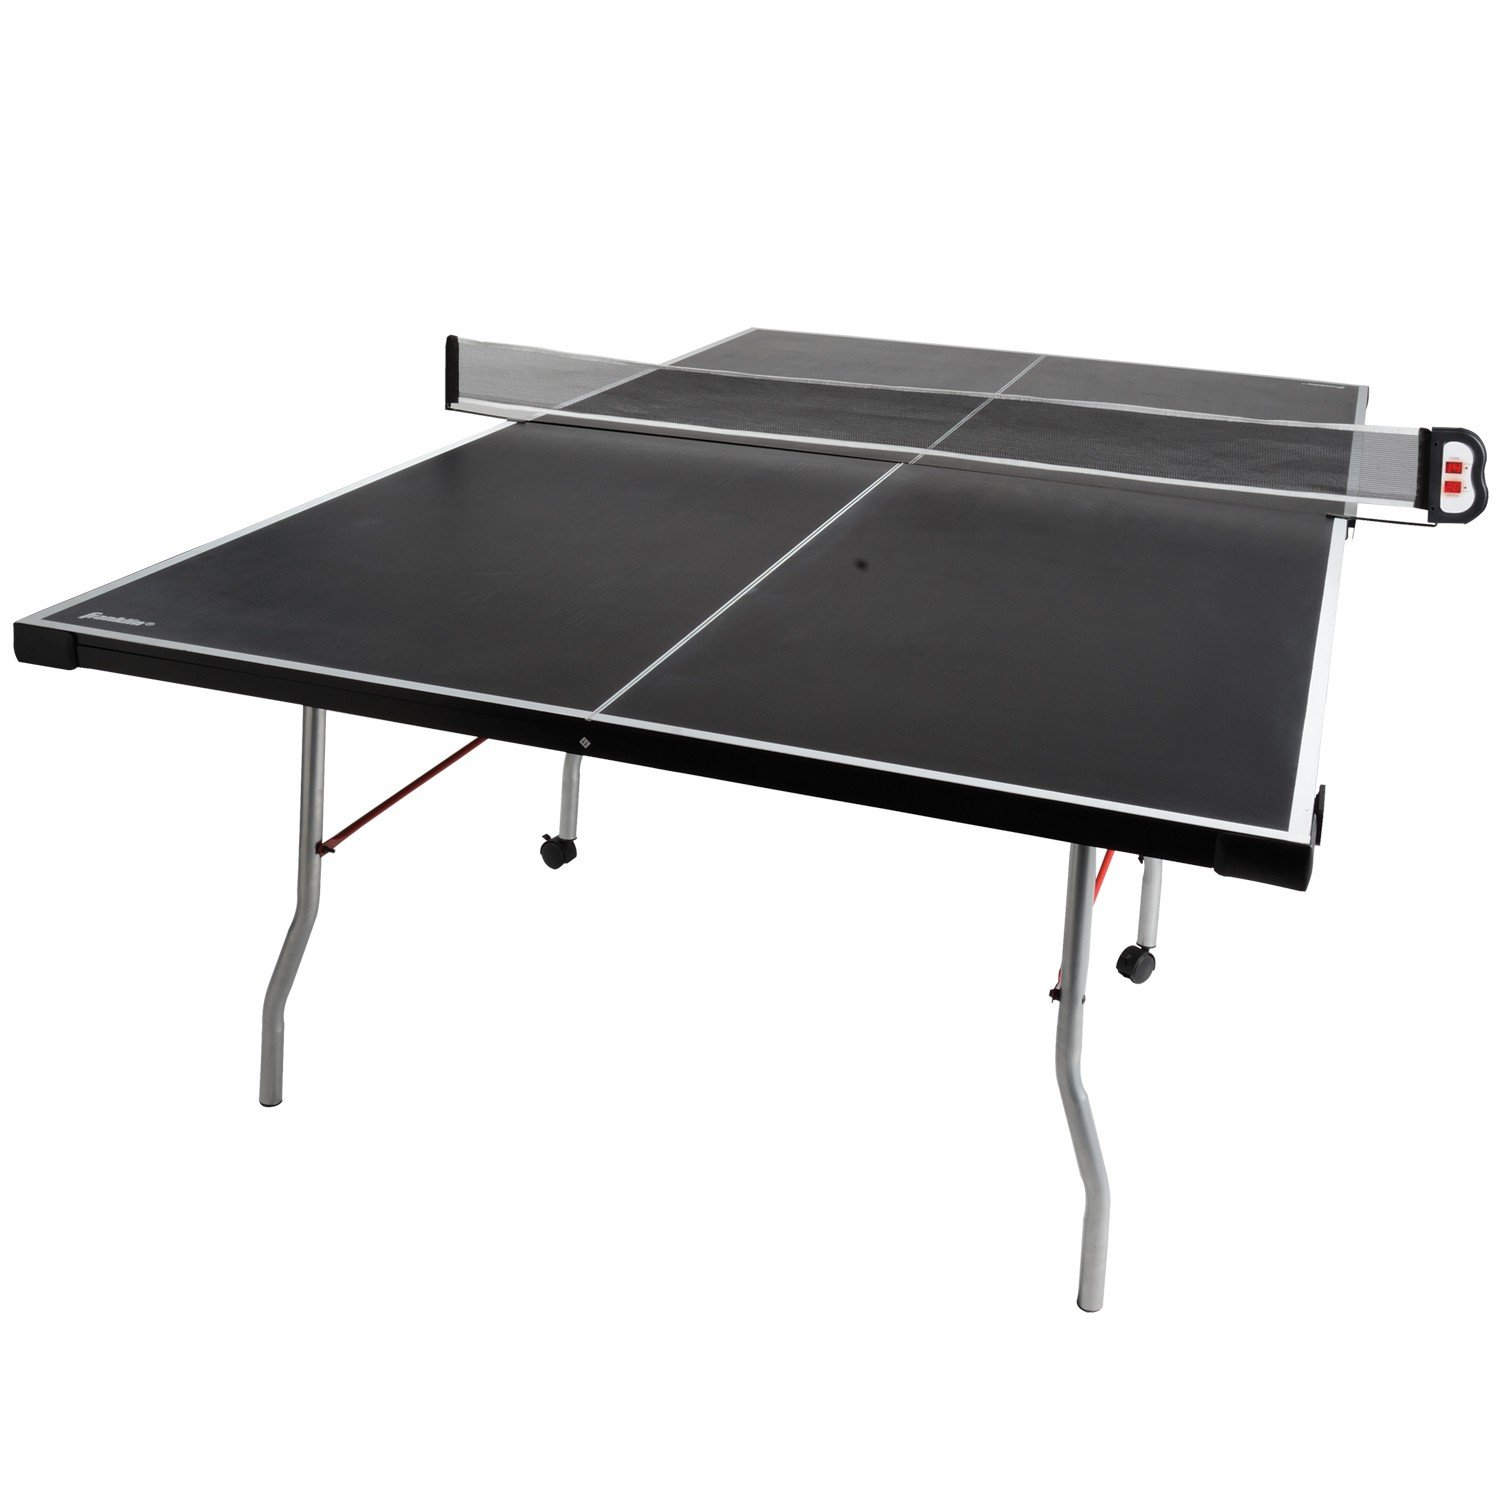 Franklin Sports Electro Pro Table Tennis Table by Franklin Sports